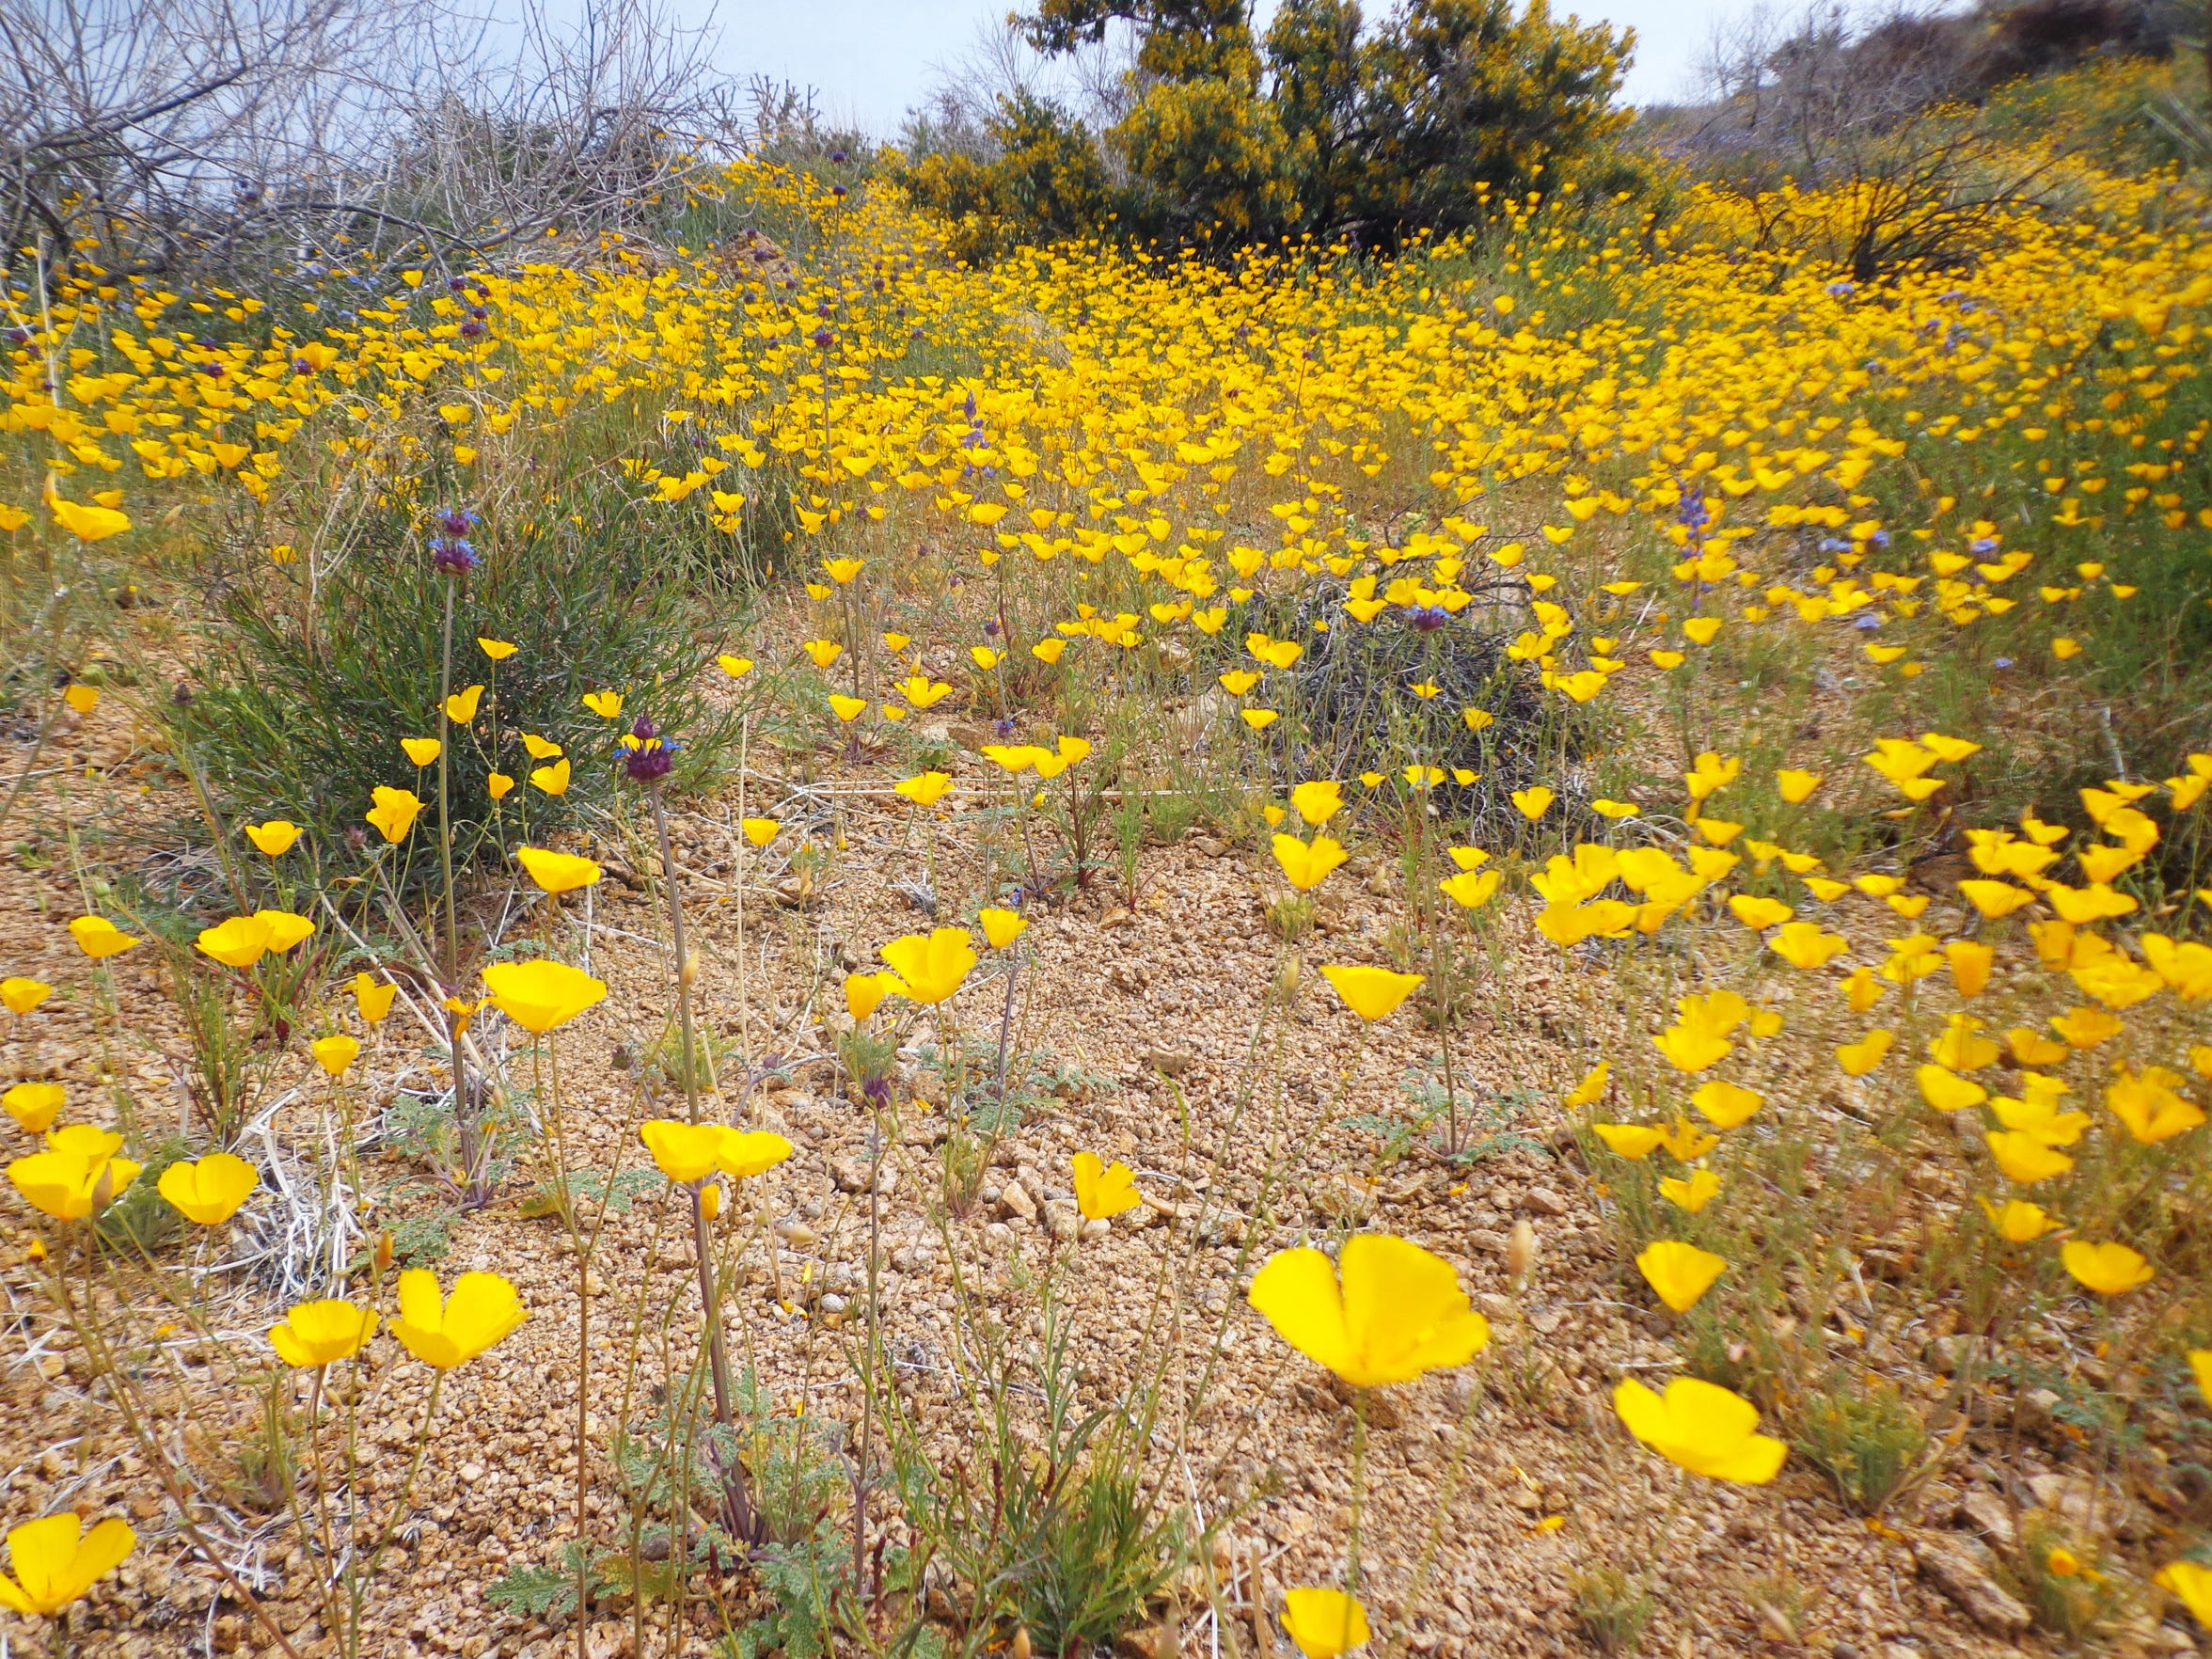 Porous sandy ground without competition shows how poppies are not fond of flat ground.